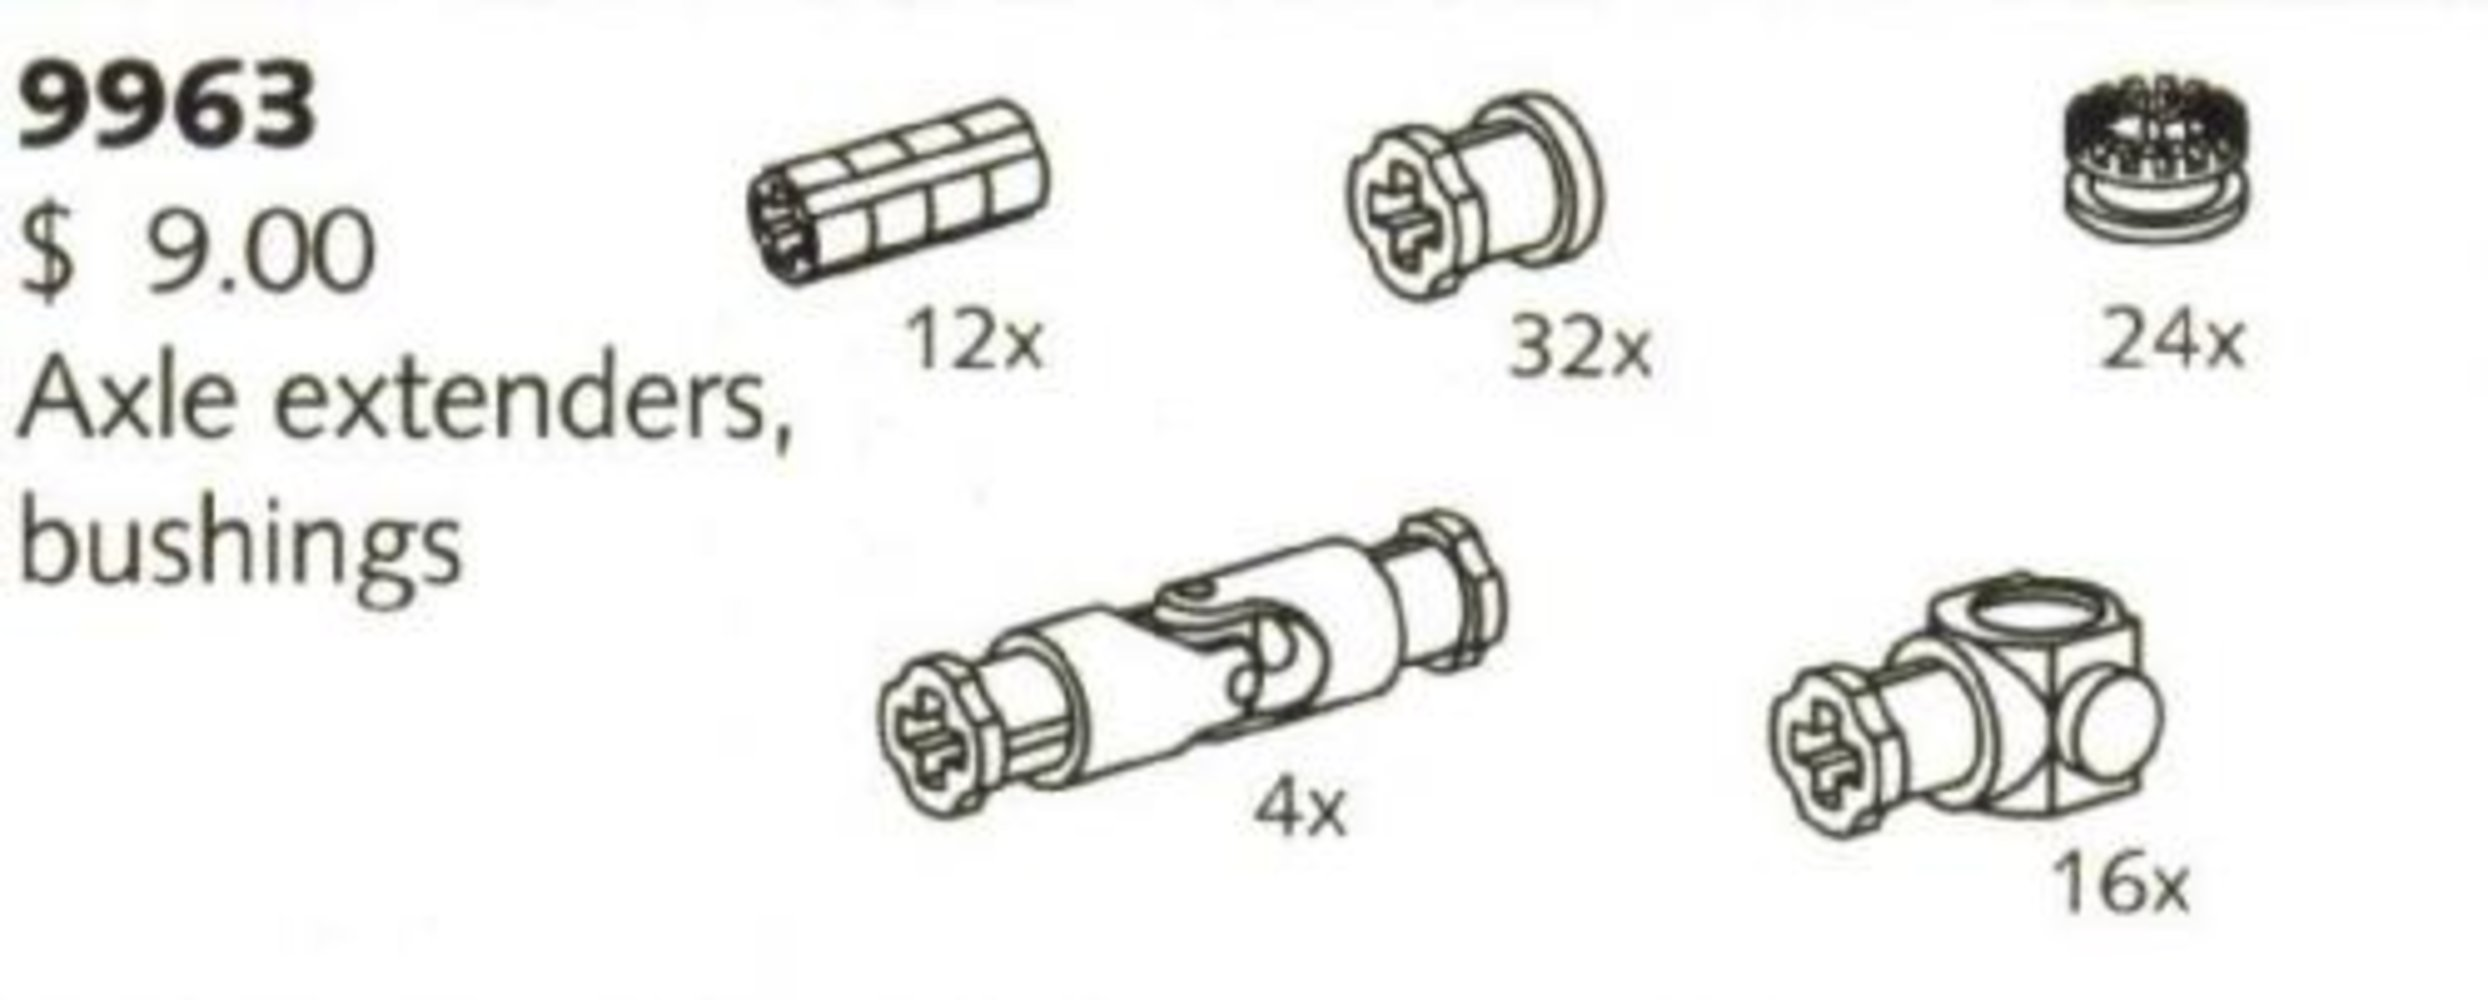 Axle Extenders and Bushings